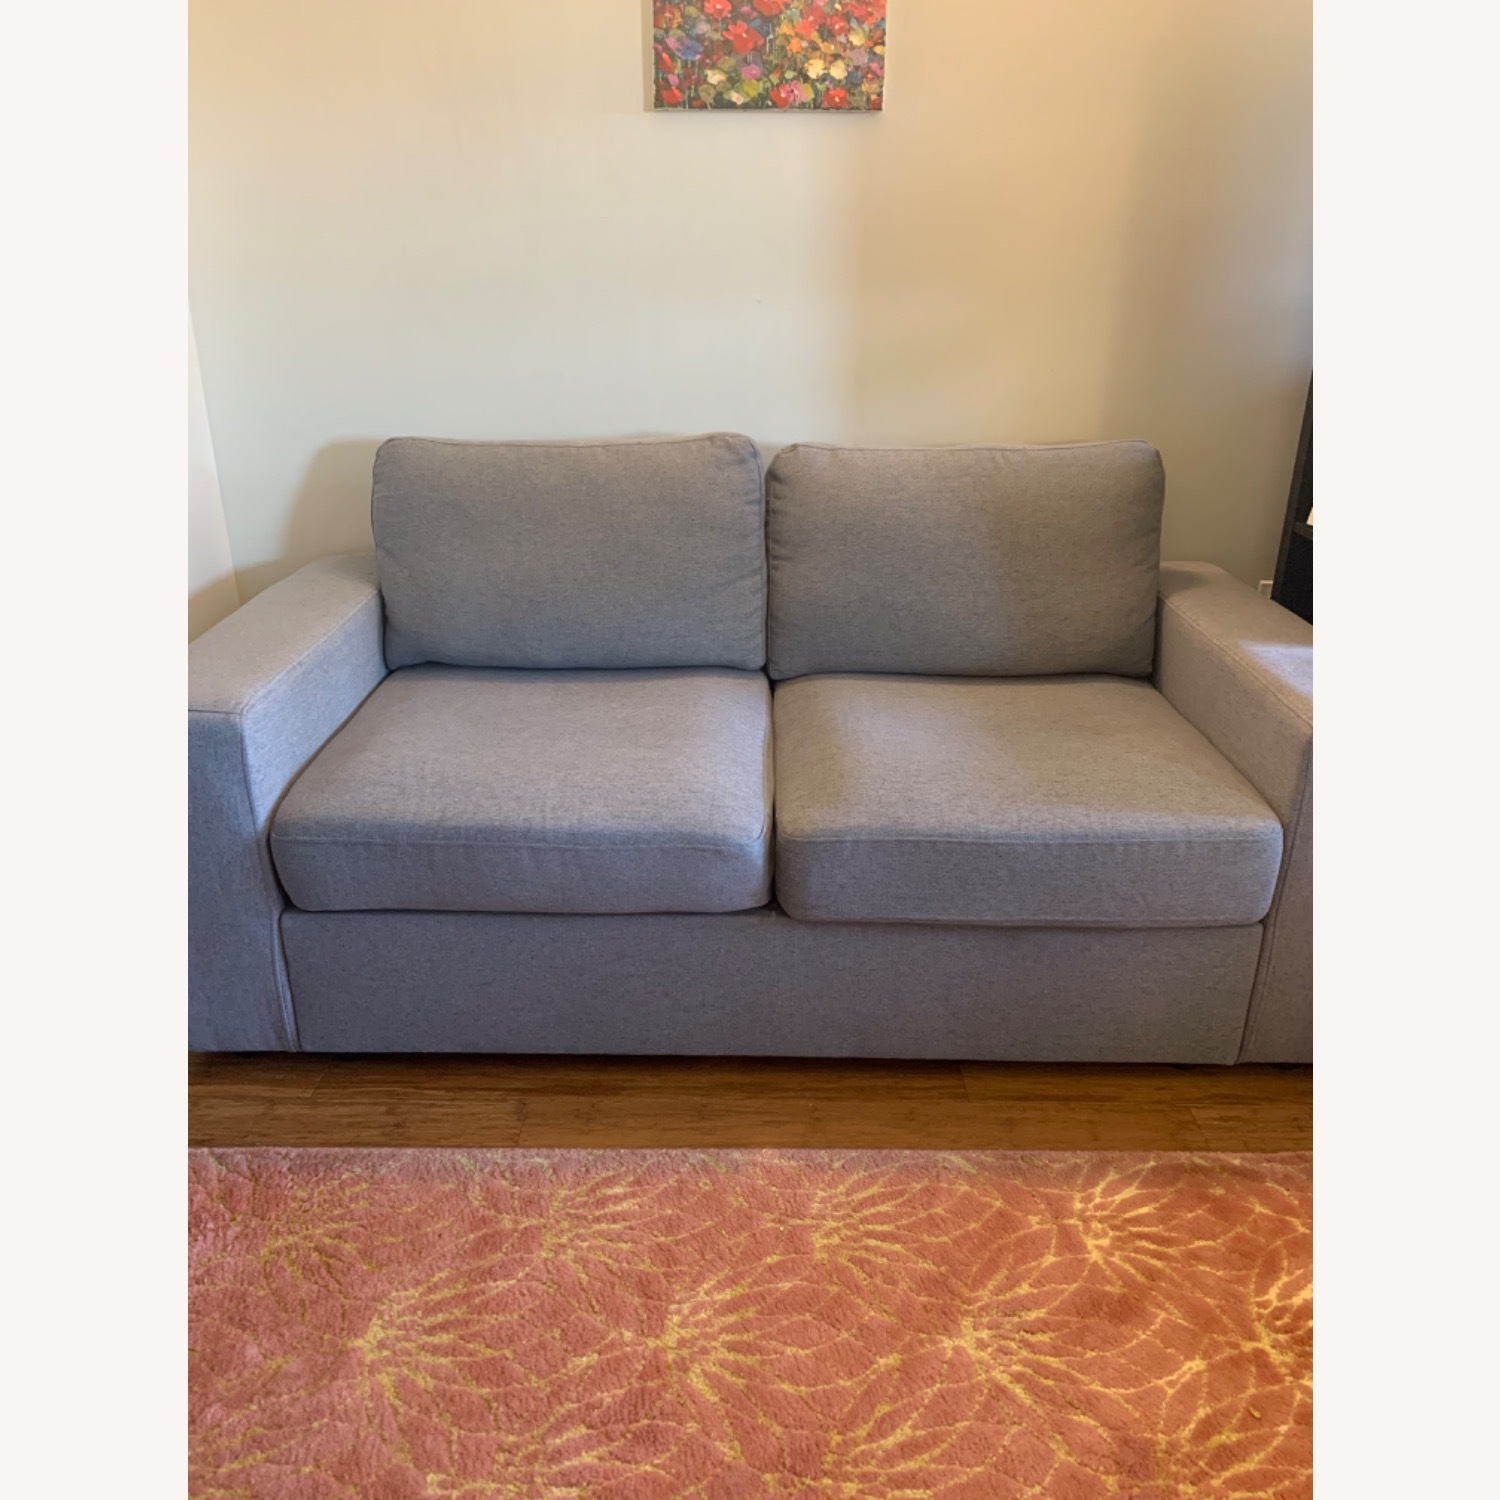 Wayfair Gosnell Reversible Loveseat & Ottoman - image-2